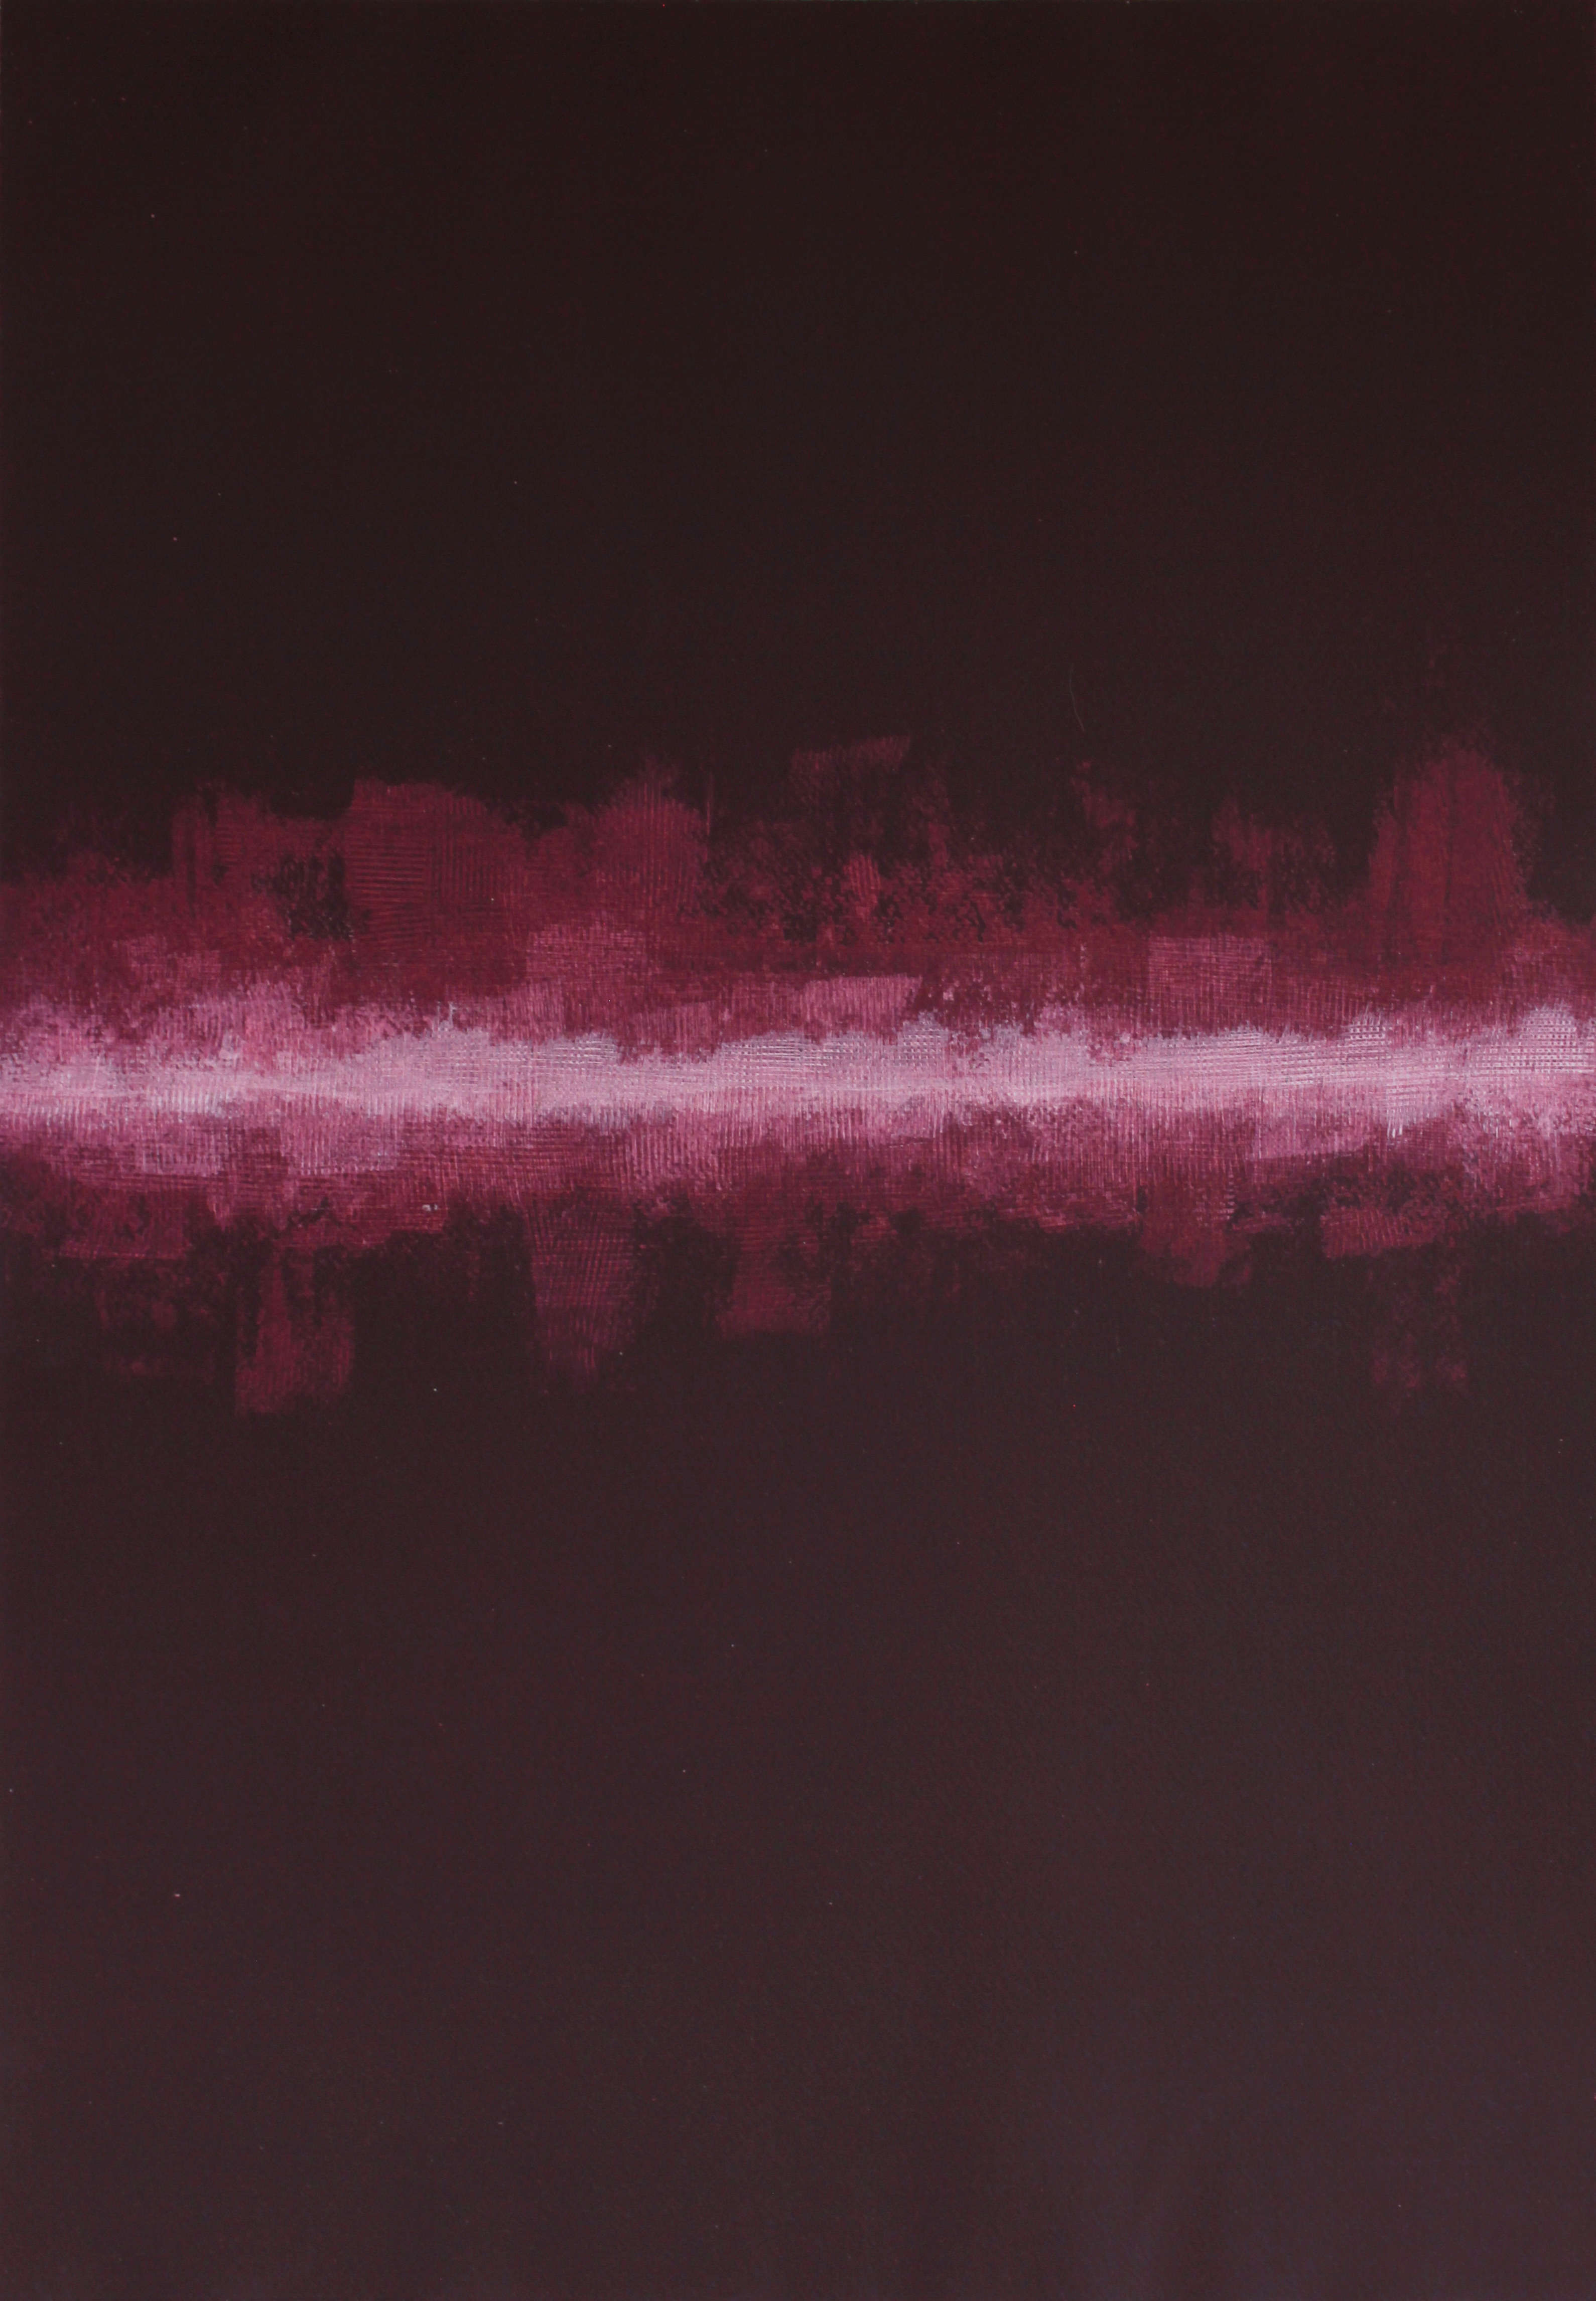 The Phase Transition of a Person Who Matters - Abstract Painting By John Lally